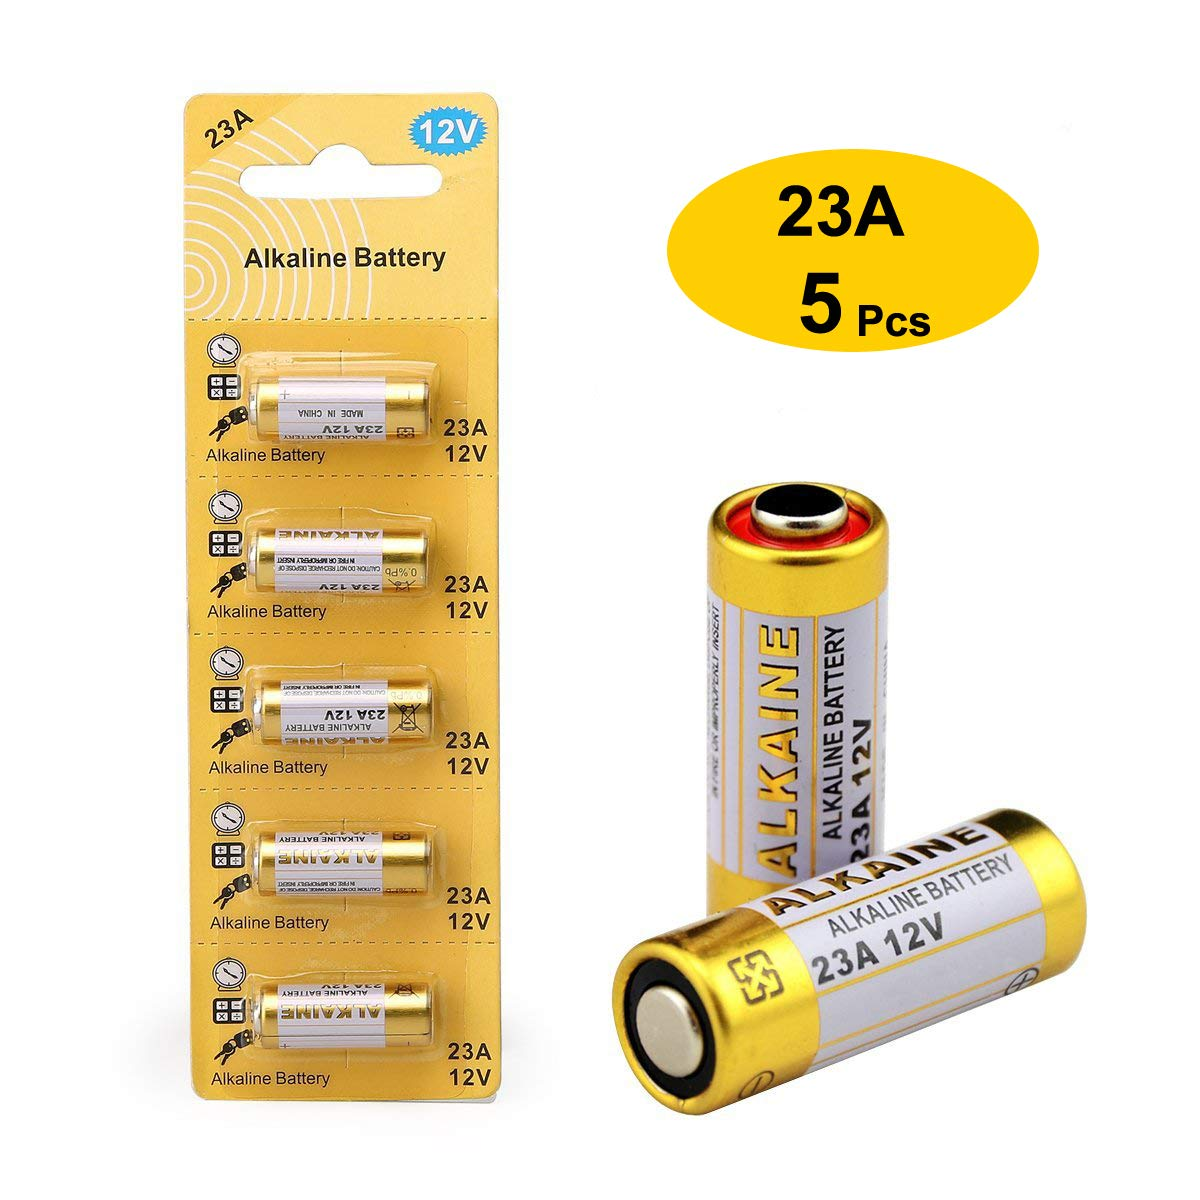 LiCB 23A 12V Alkaline Battery (5-Pack)